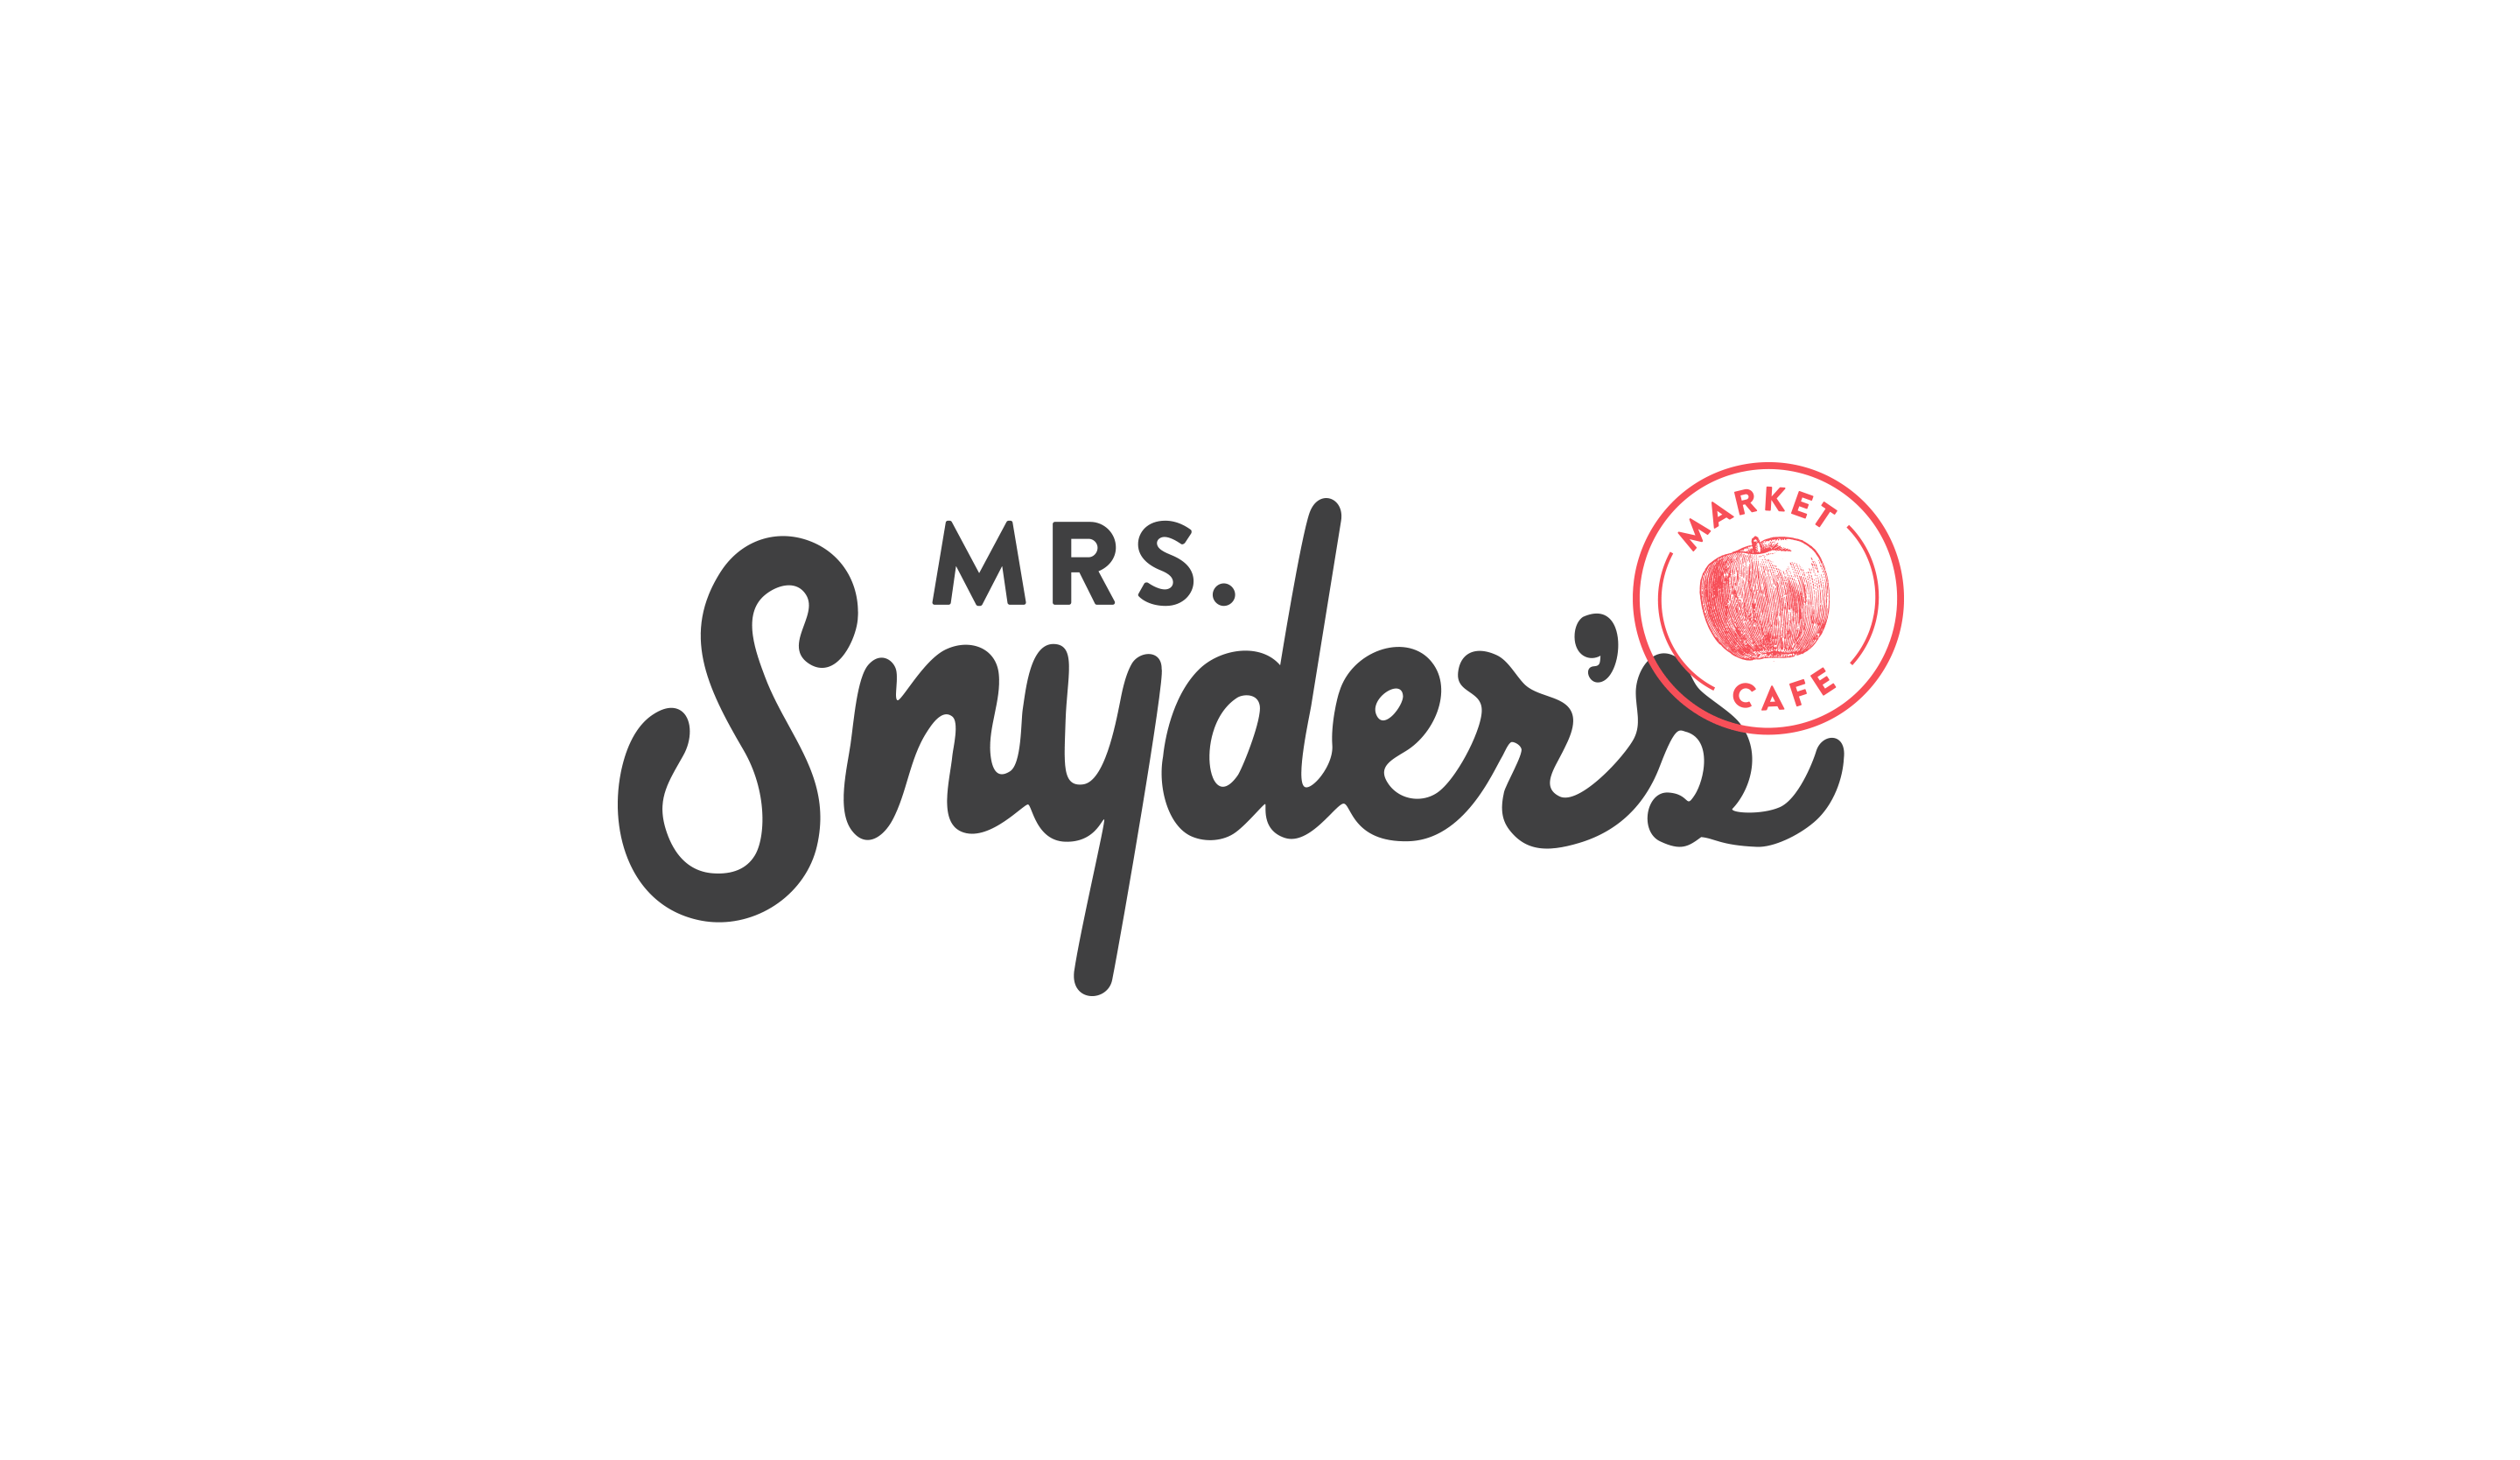 Mrs Snyder's Logo in Black and Red